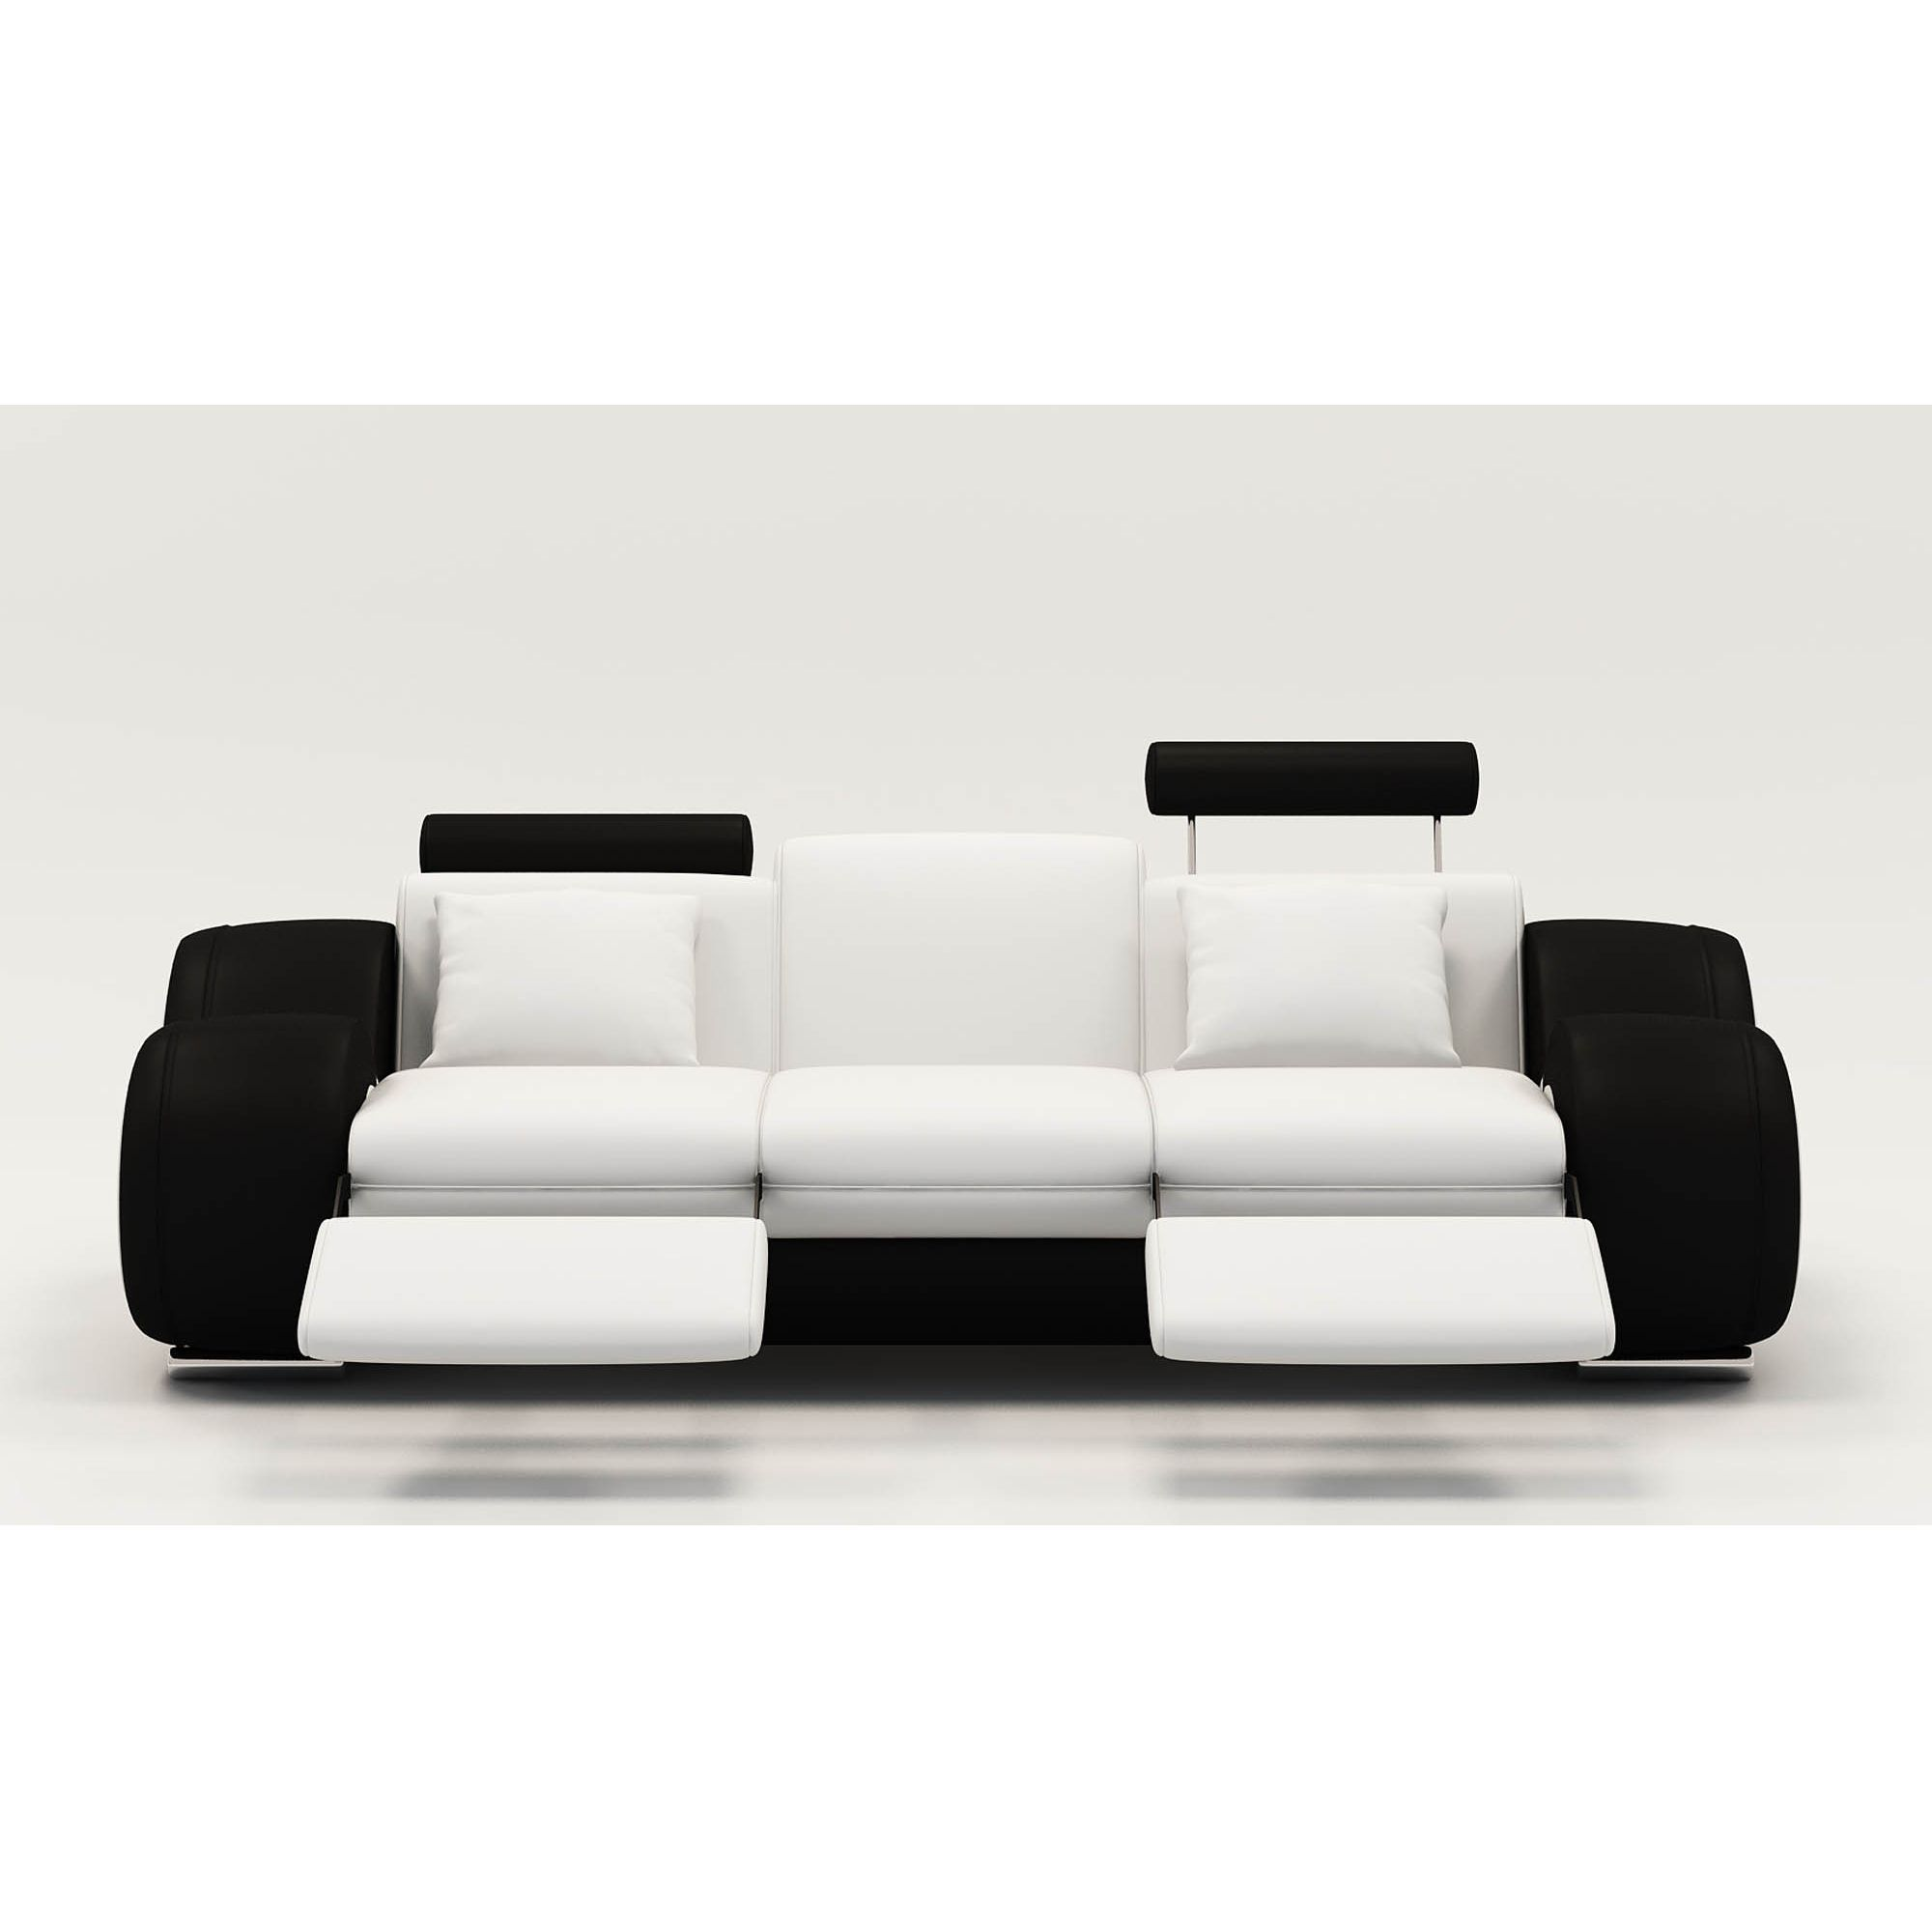 Deco in paris canape design 3 places cuir blanc et noir appuies tetes relax - Canape design cuir blanc ...